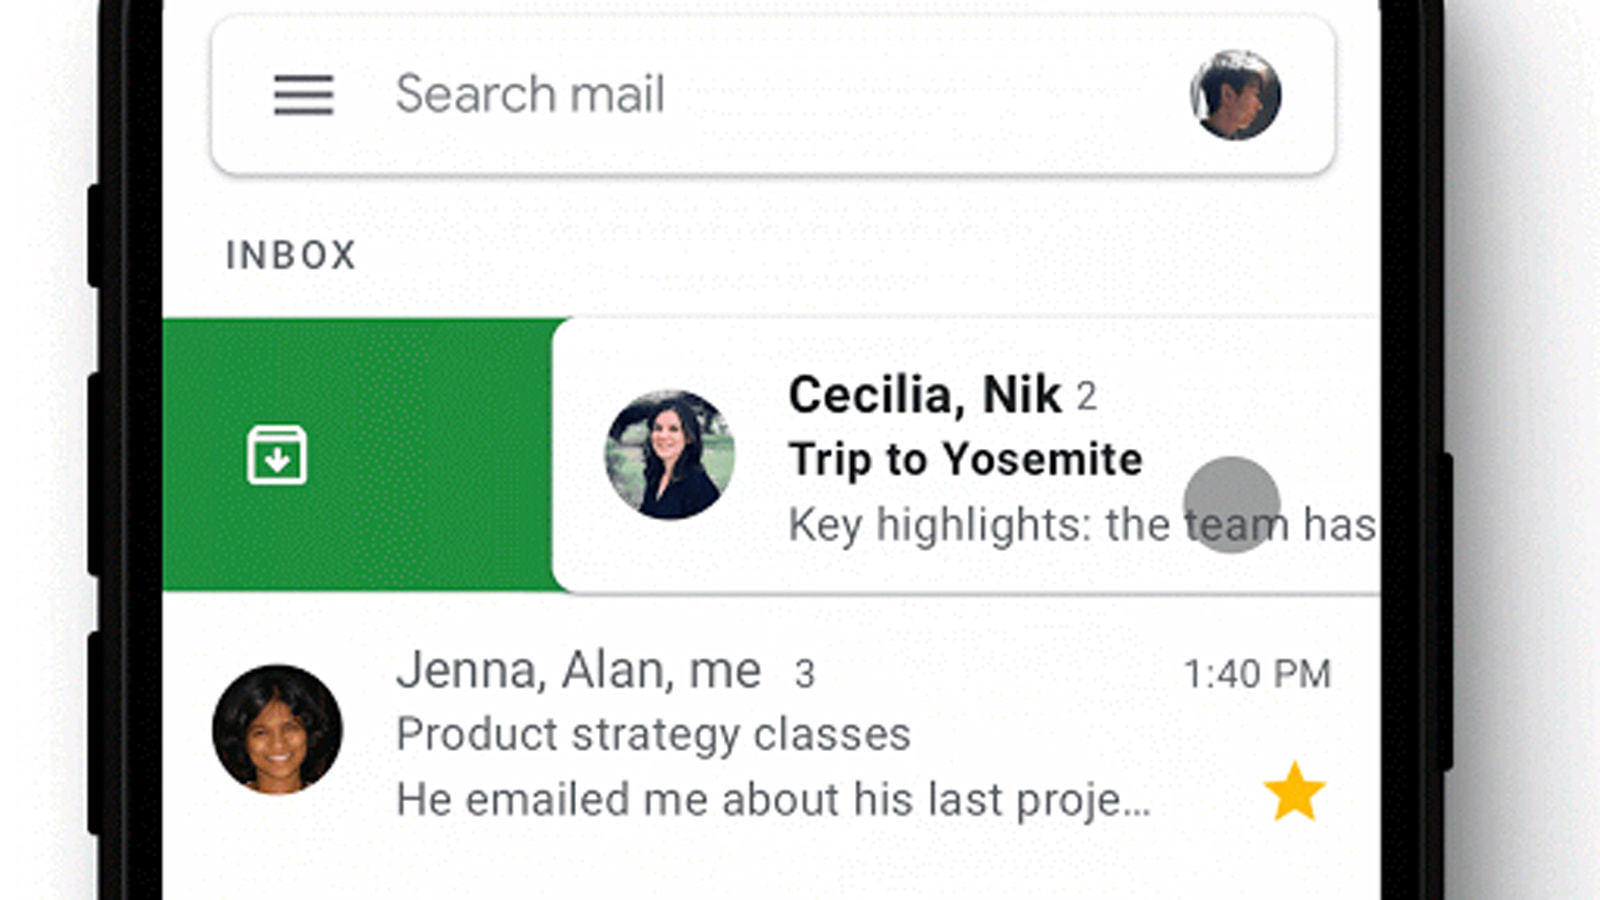 Gmail finally offers customizable swipe actions on iOS